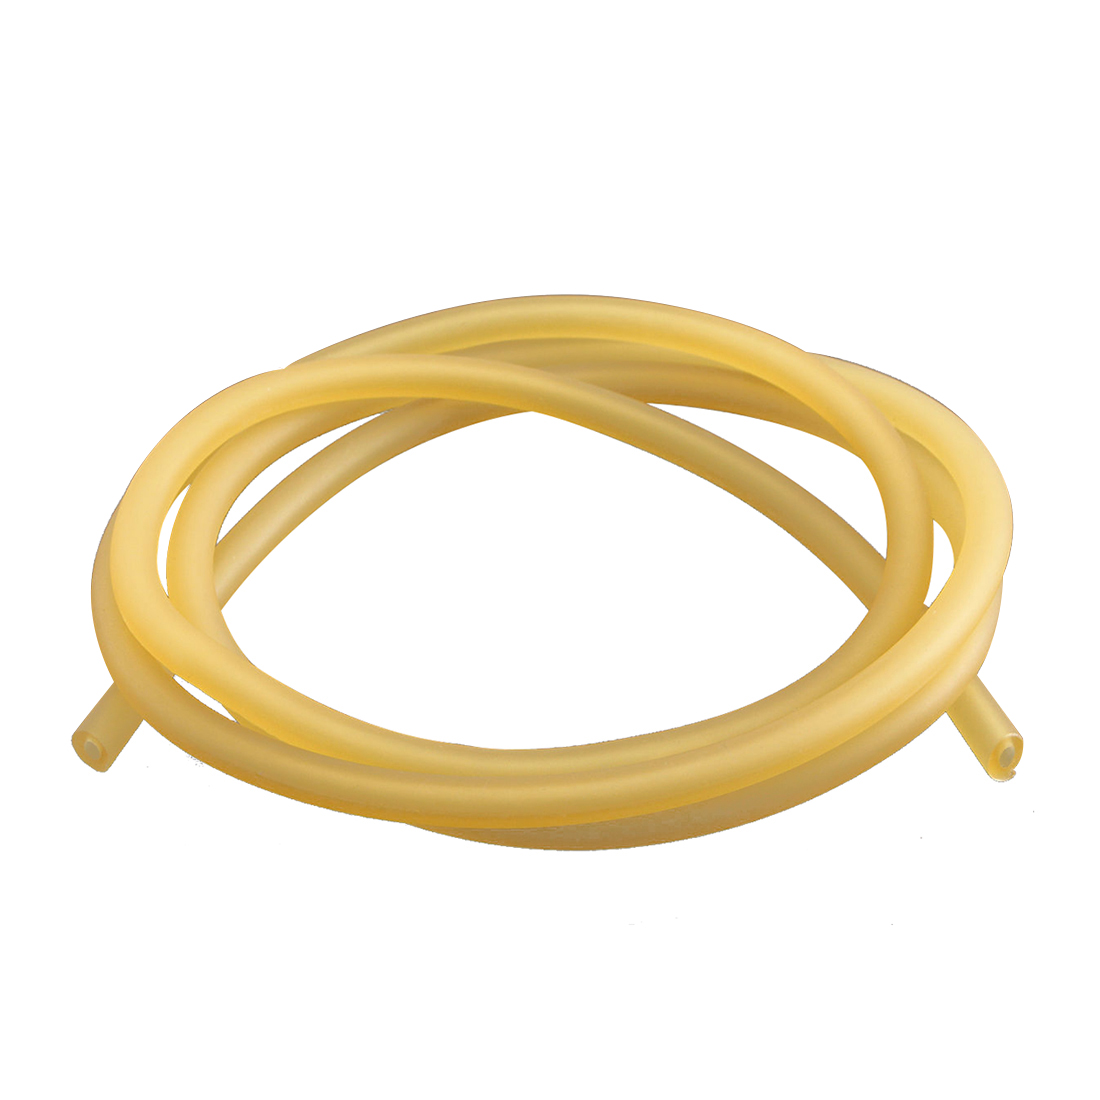 Natural Latex Rubber Surgical Band Tube Elastic 2x5mm Yellow Size:1M